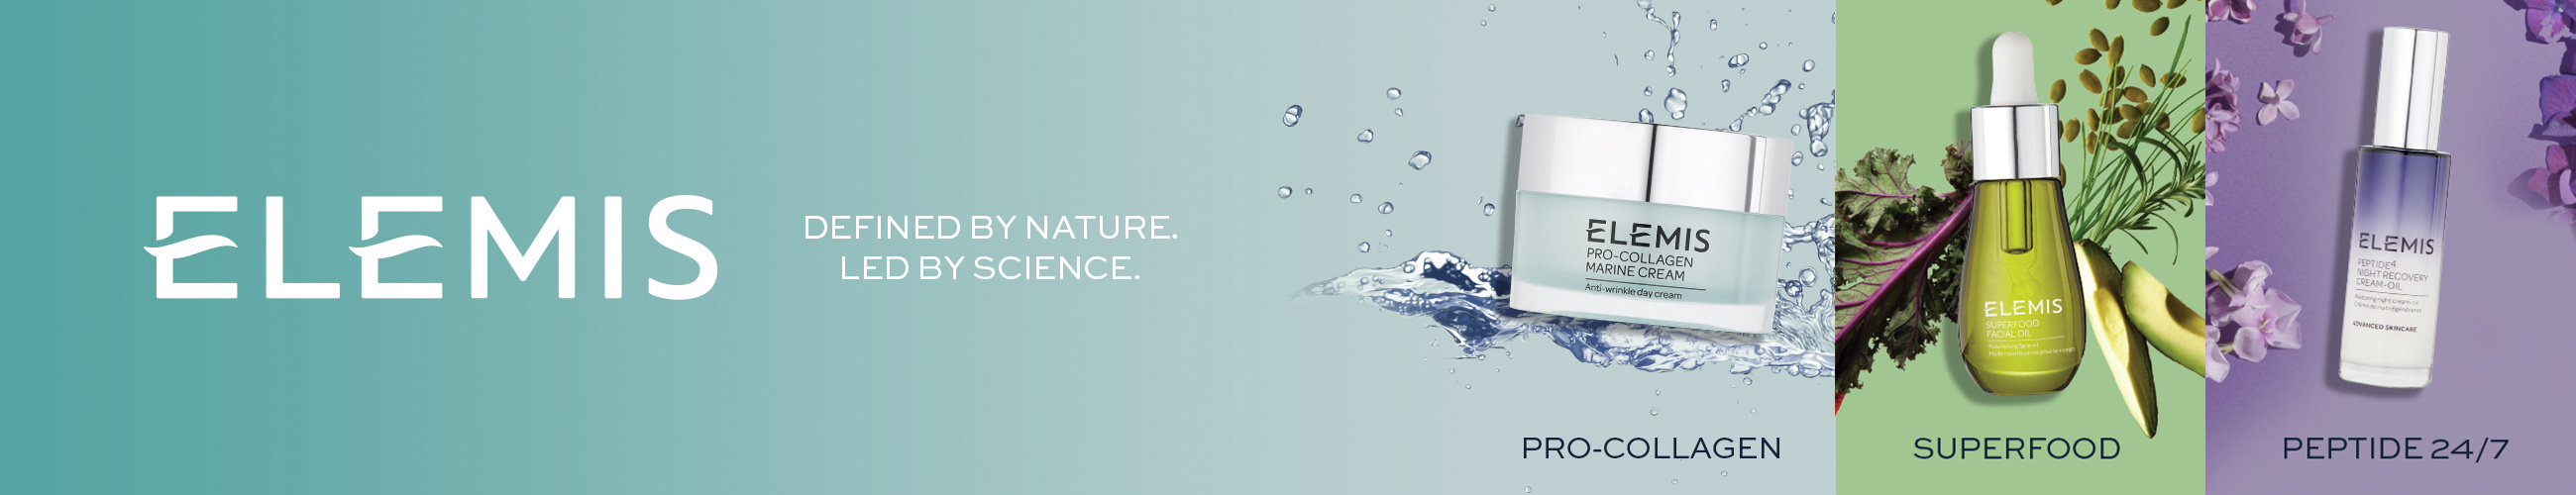 ELEMIS.  Defined by nature. Led by science.